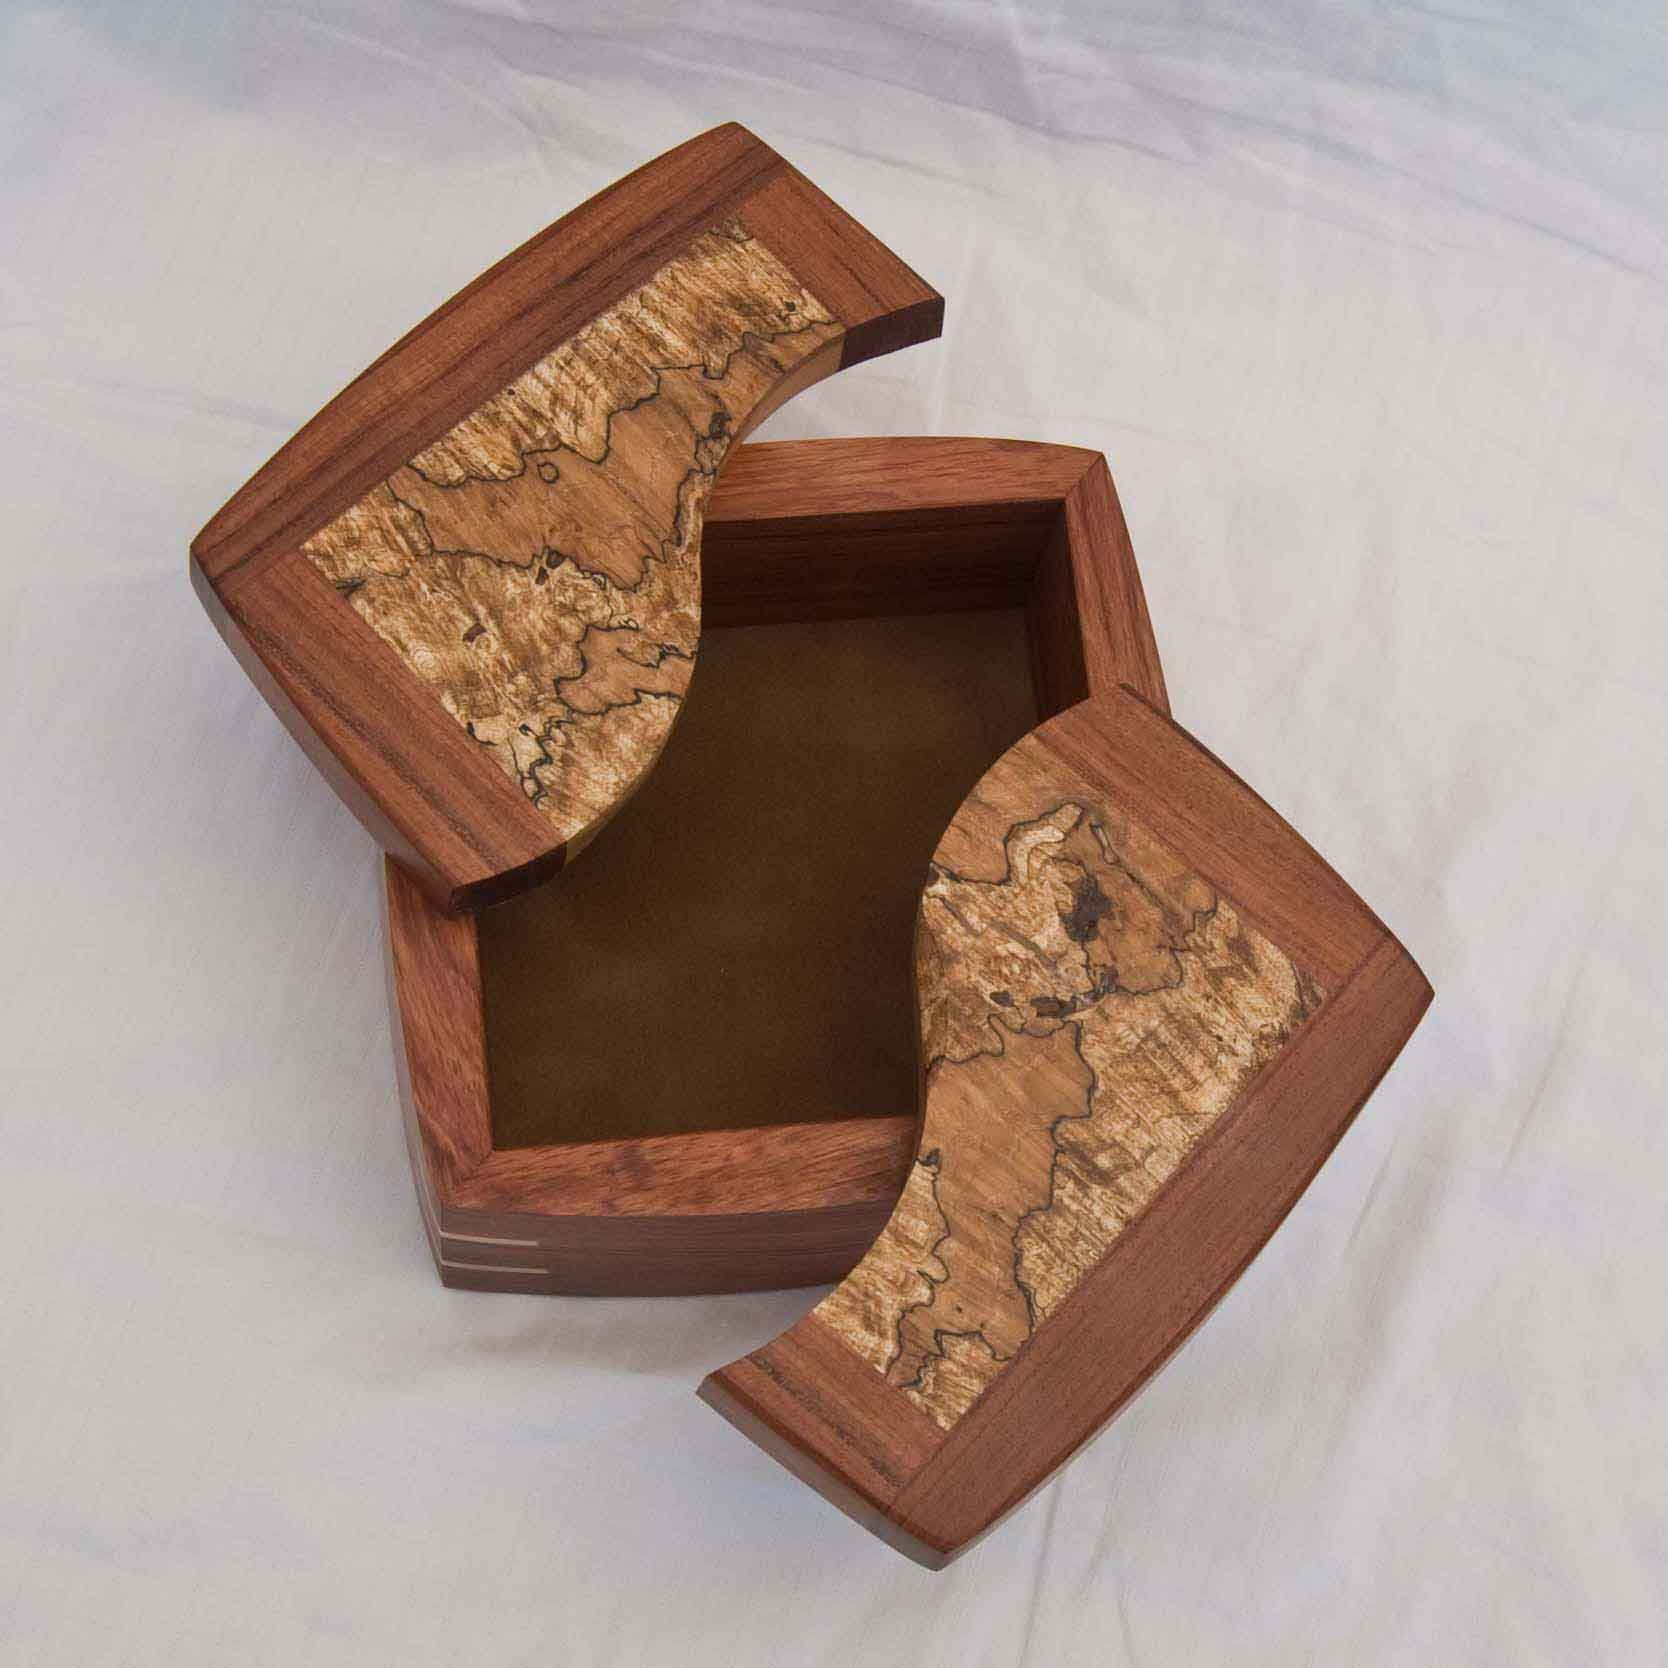 How To Make A Decorative Wooden Box: Four Examples Of A Handmade Decorative Keepsake Box With